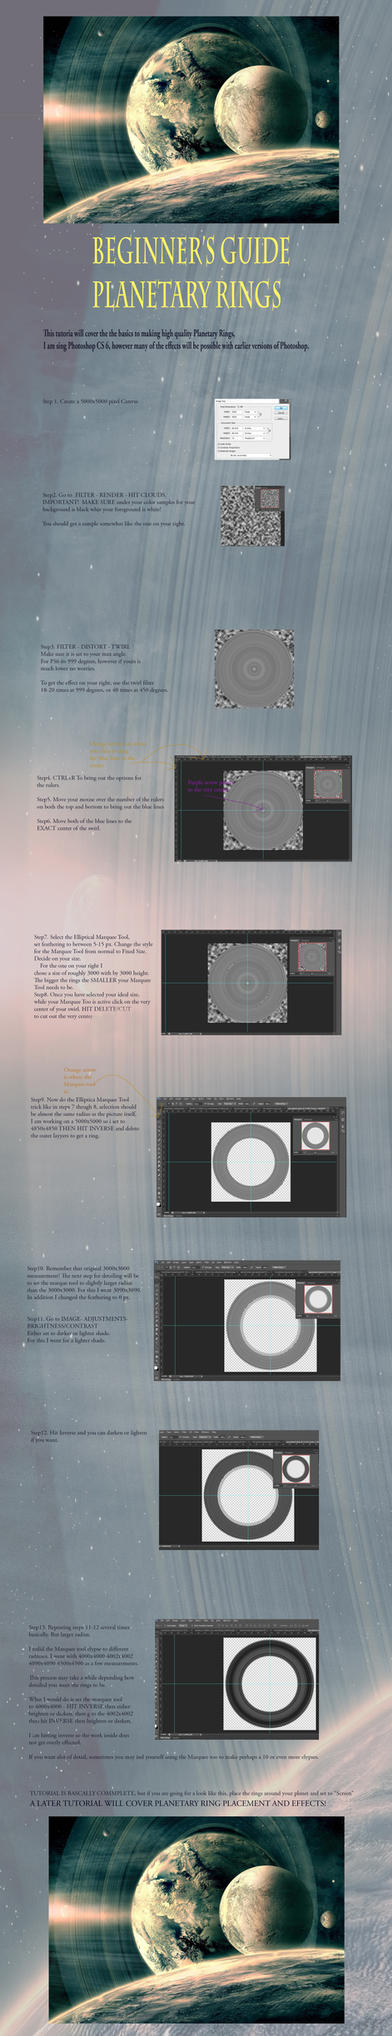 Planetary Ring Tutorial (Page 1) by ValentiniaK